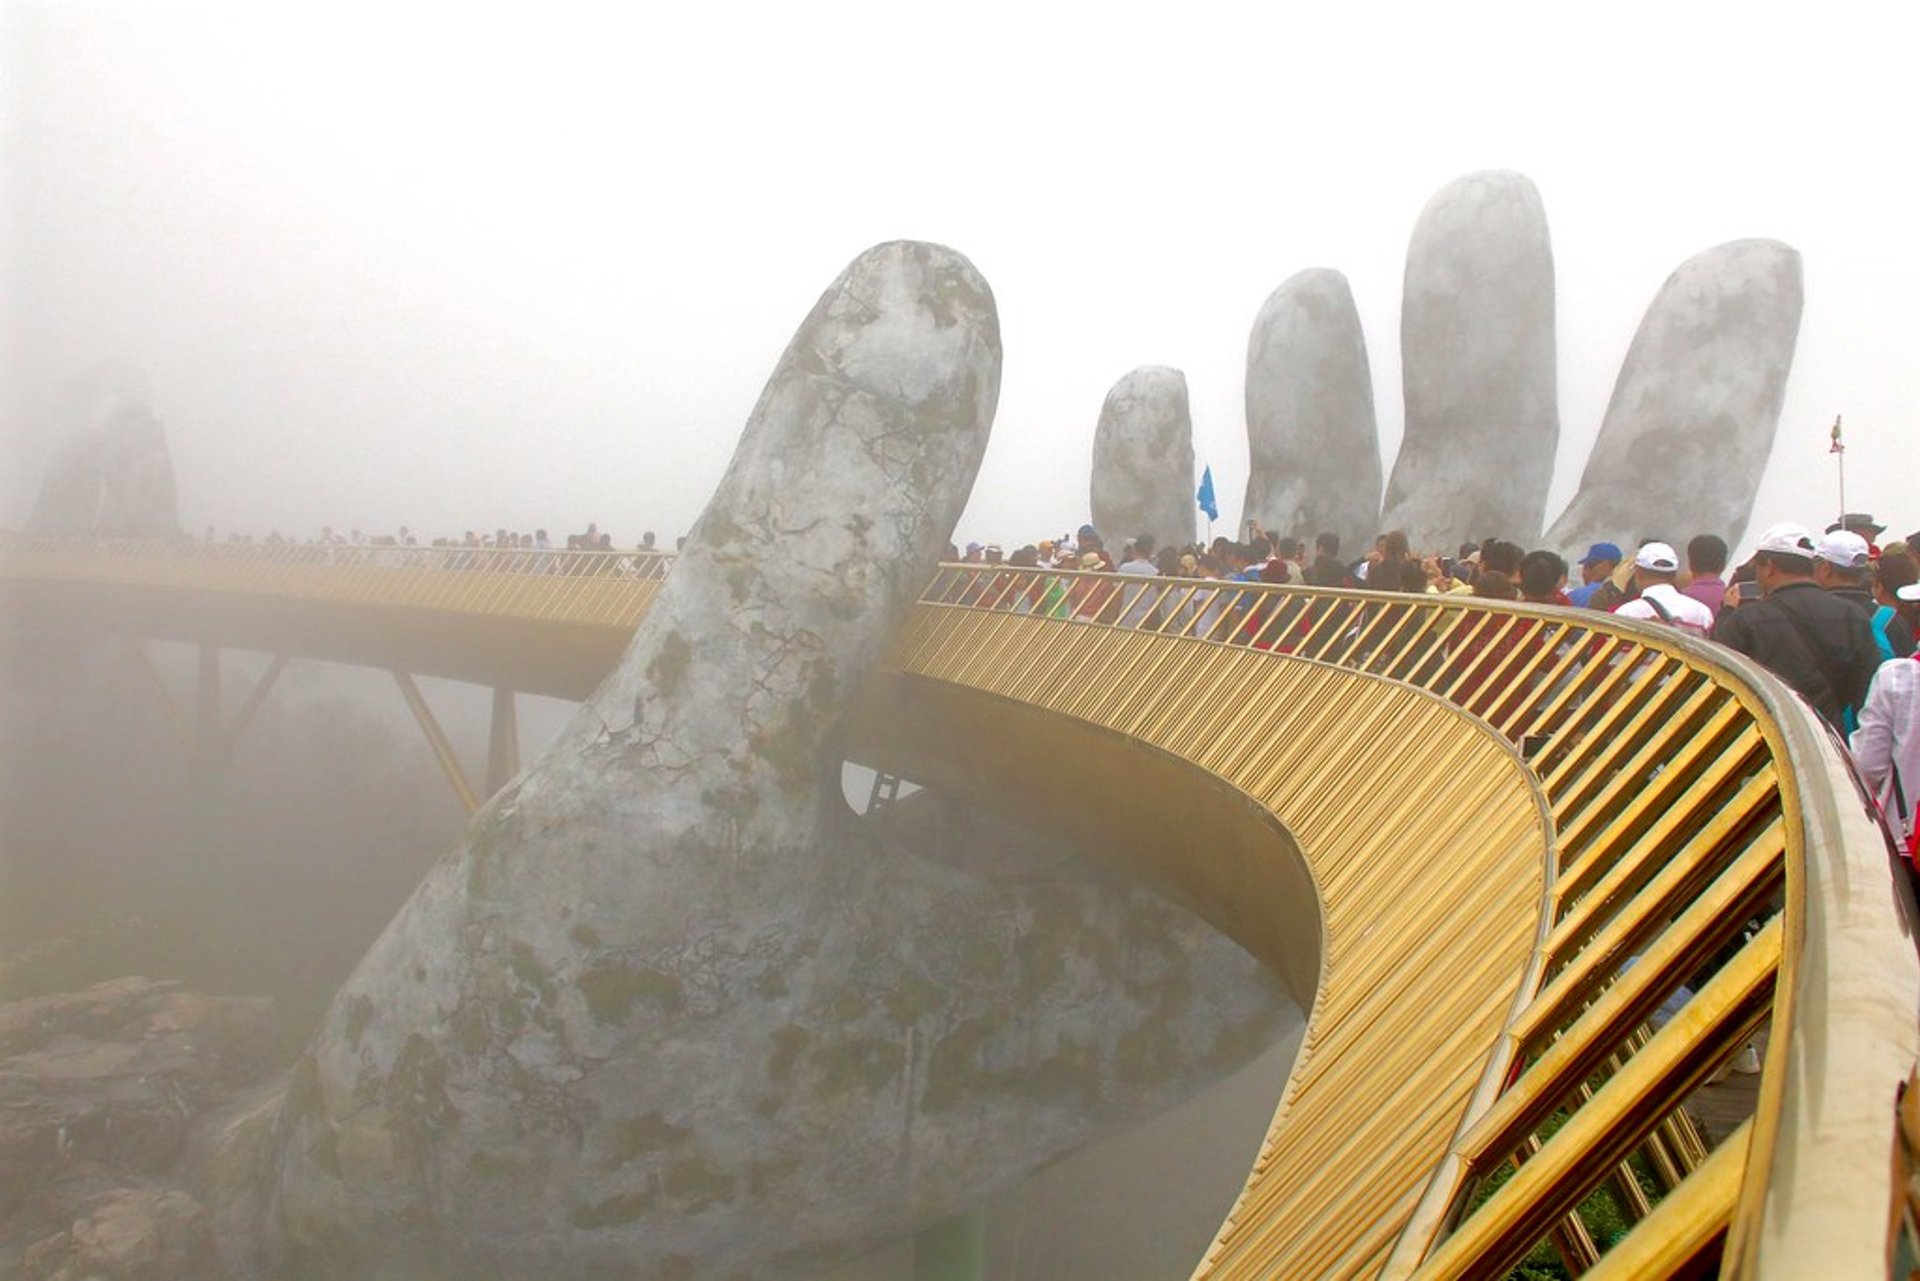 Golden Bridge (Cầu Vàng) in Vietnam - Best Season 2020